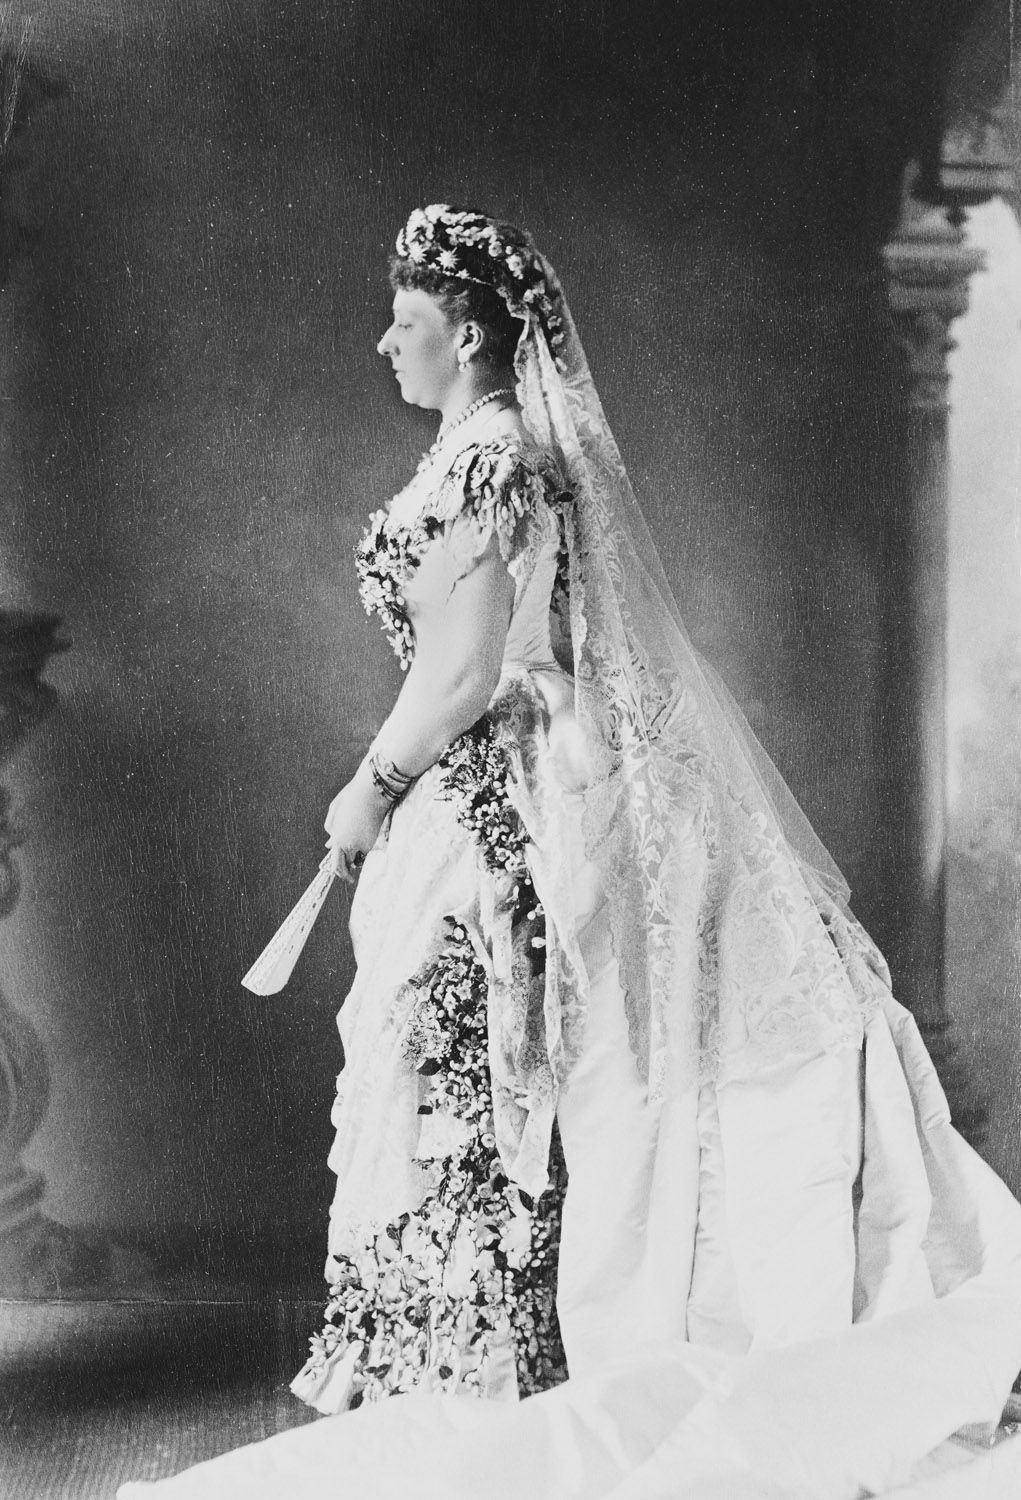 Princess Beatrice of the United Kingdom (daughter of Queen